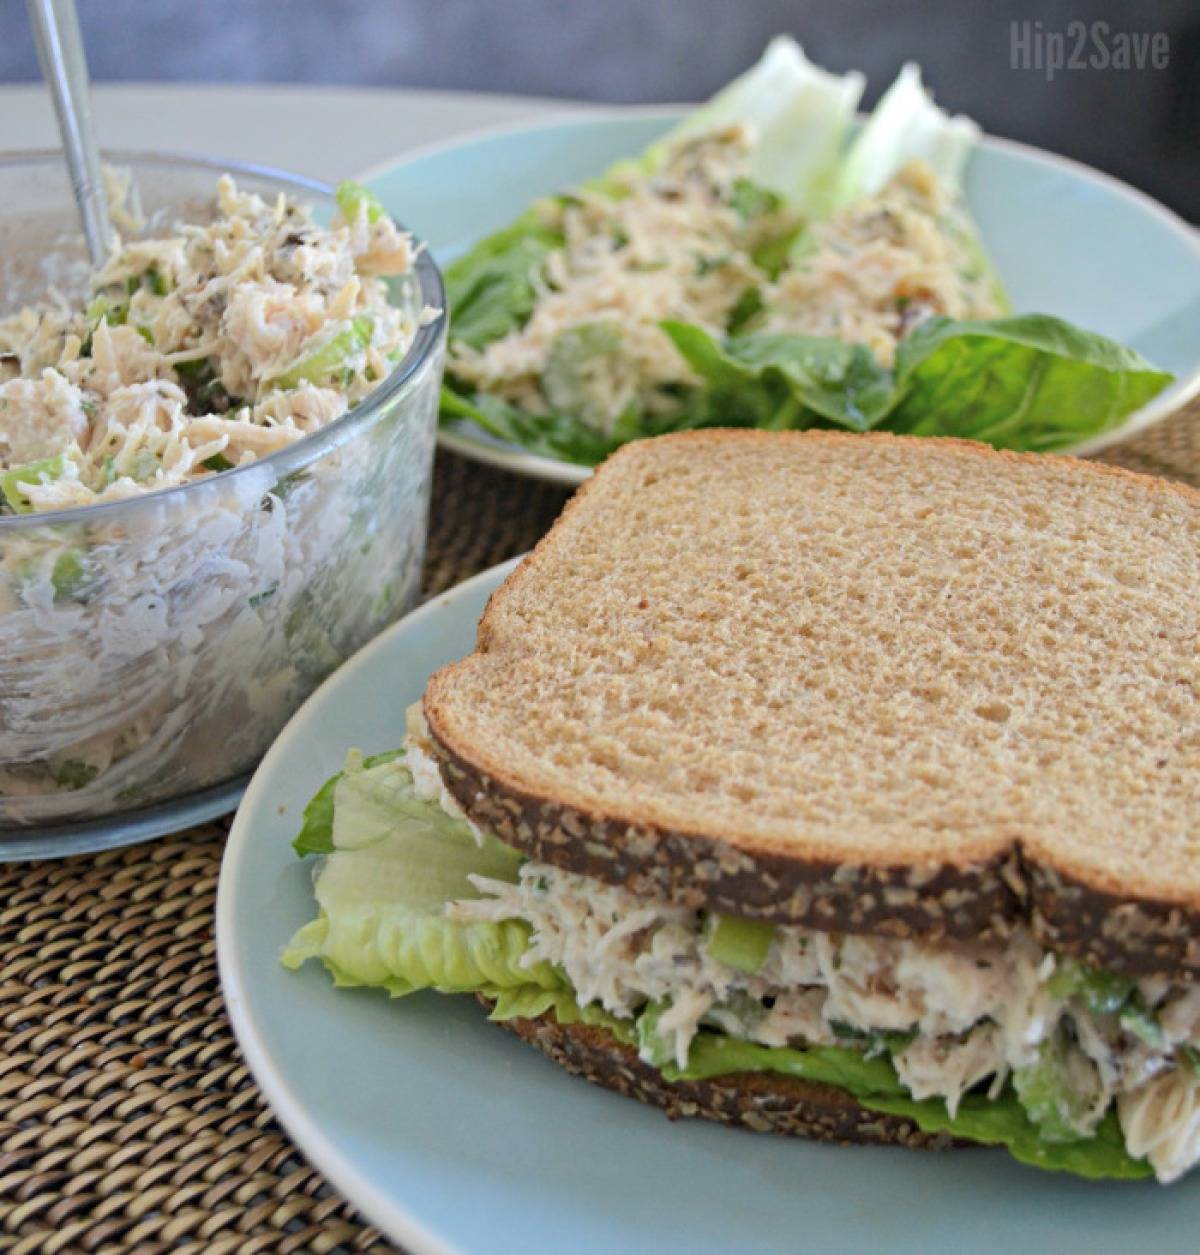 walnut chicken salad sandwich on a plate